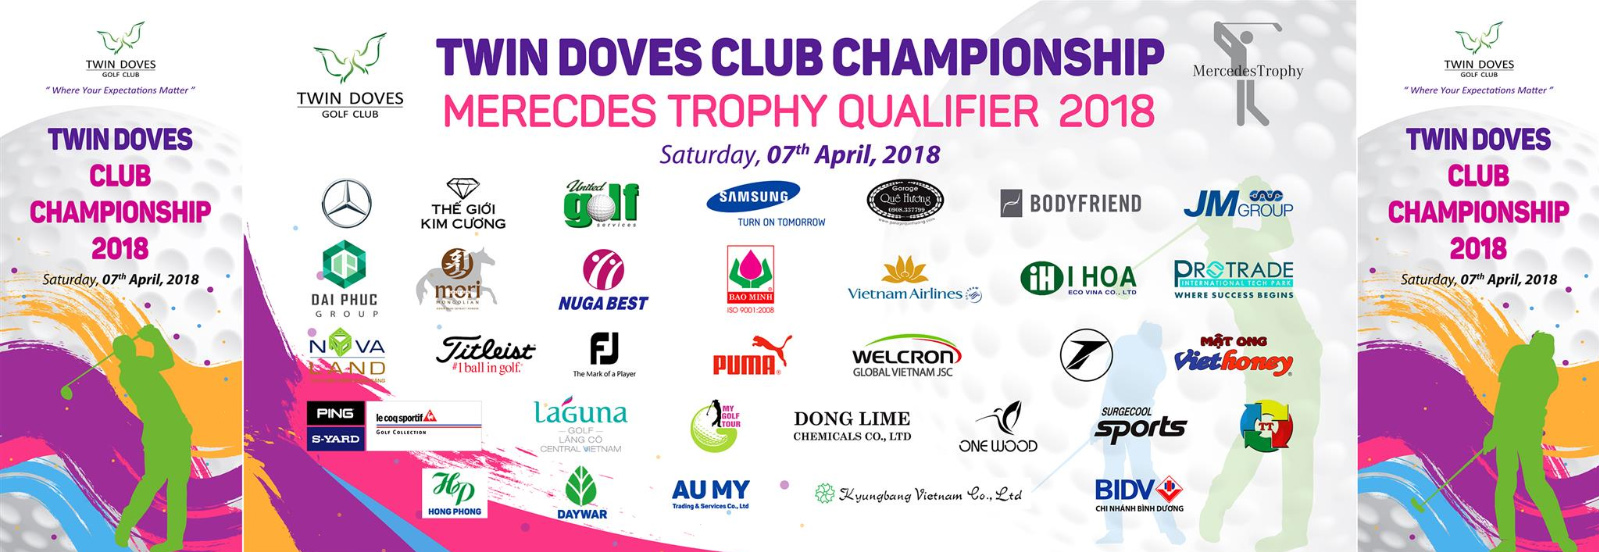 Result of Twin Doves Club Championship 2018